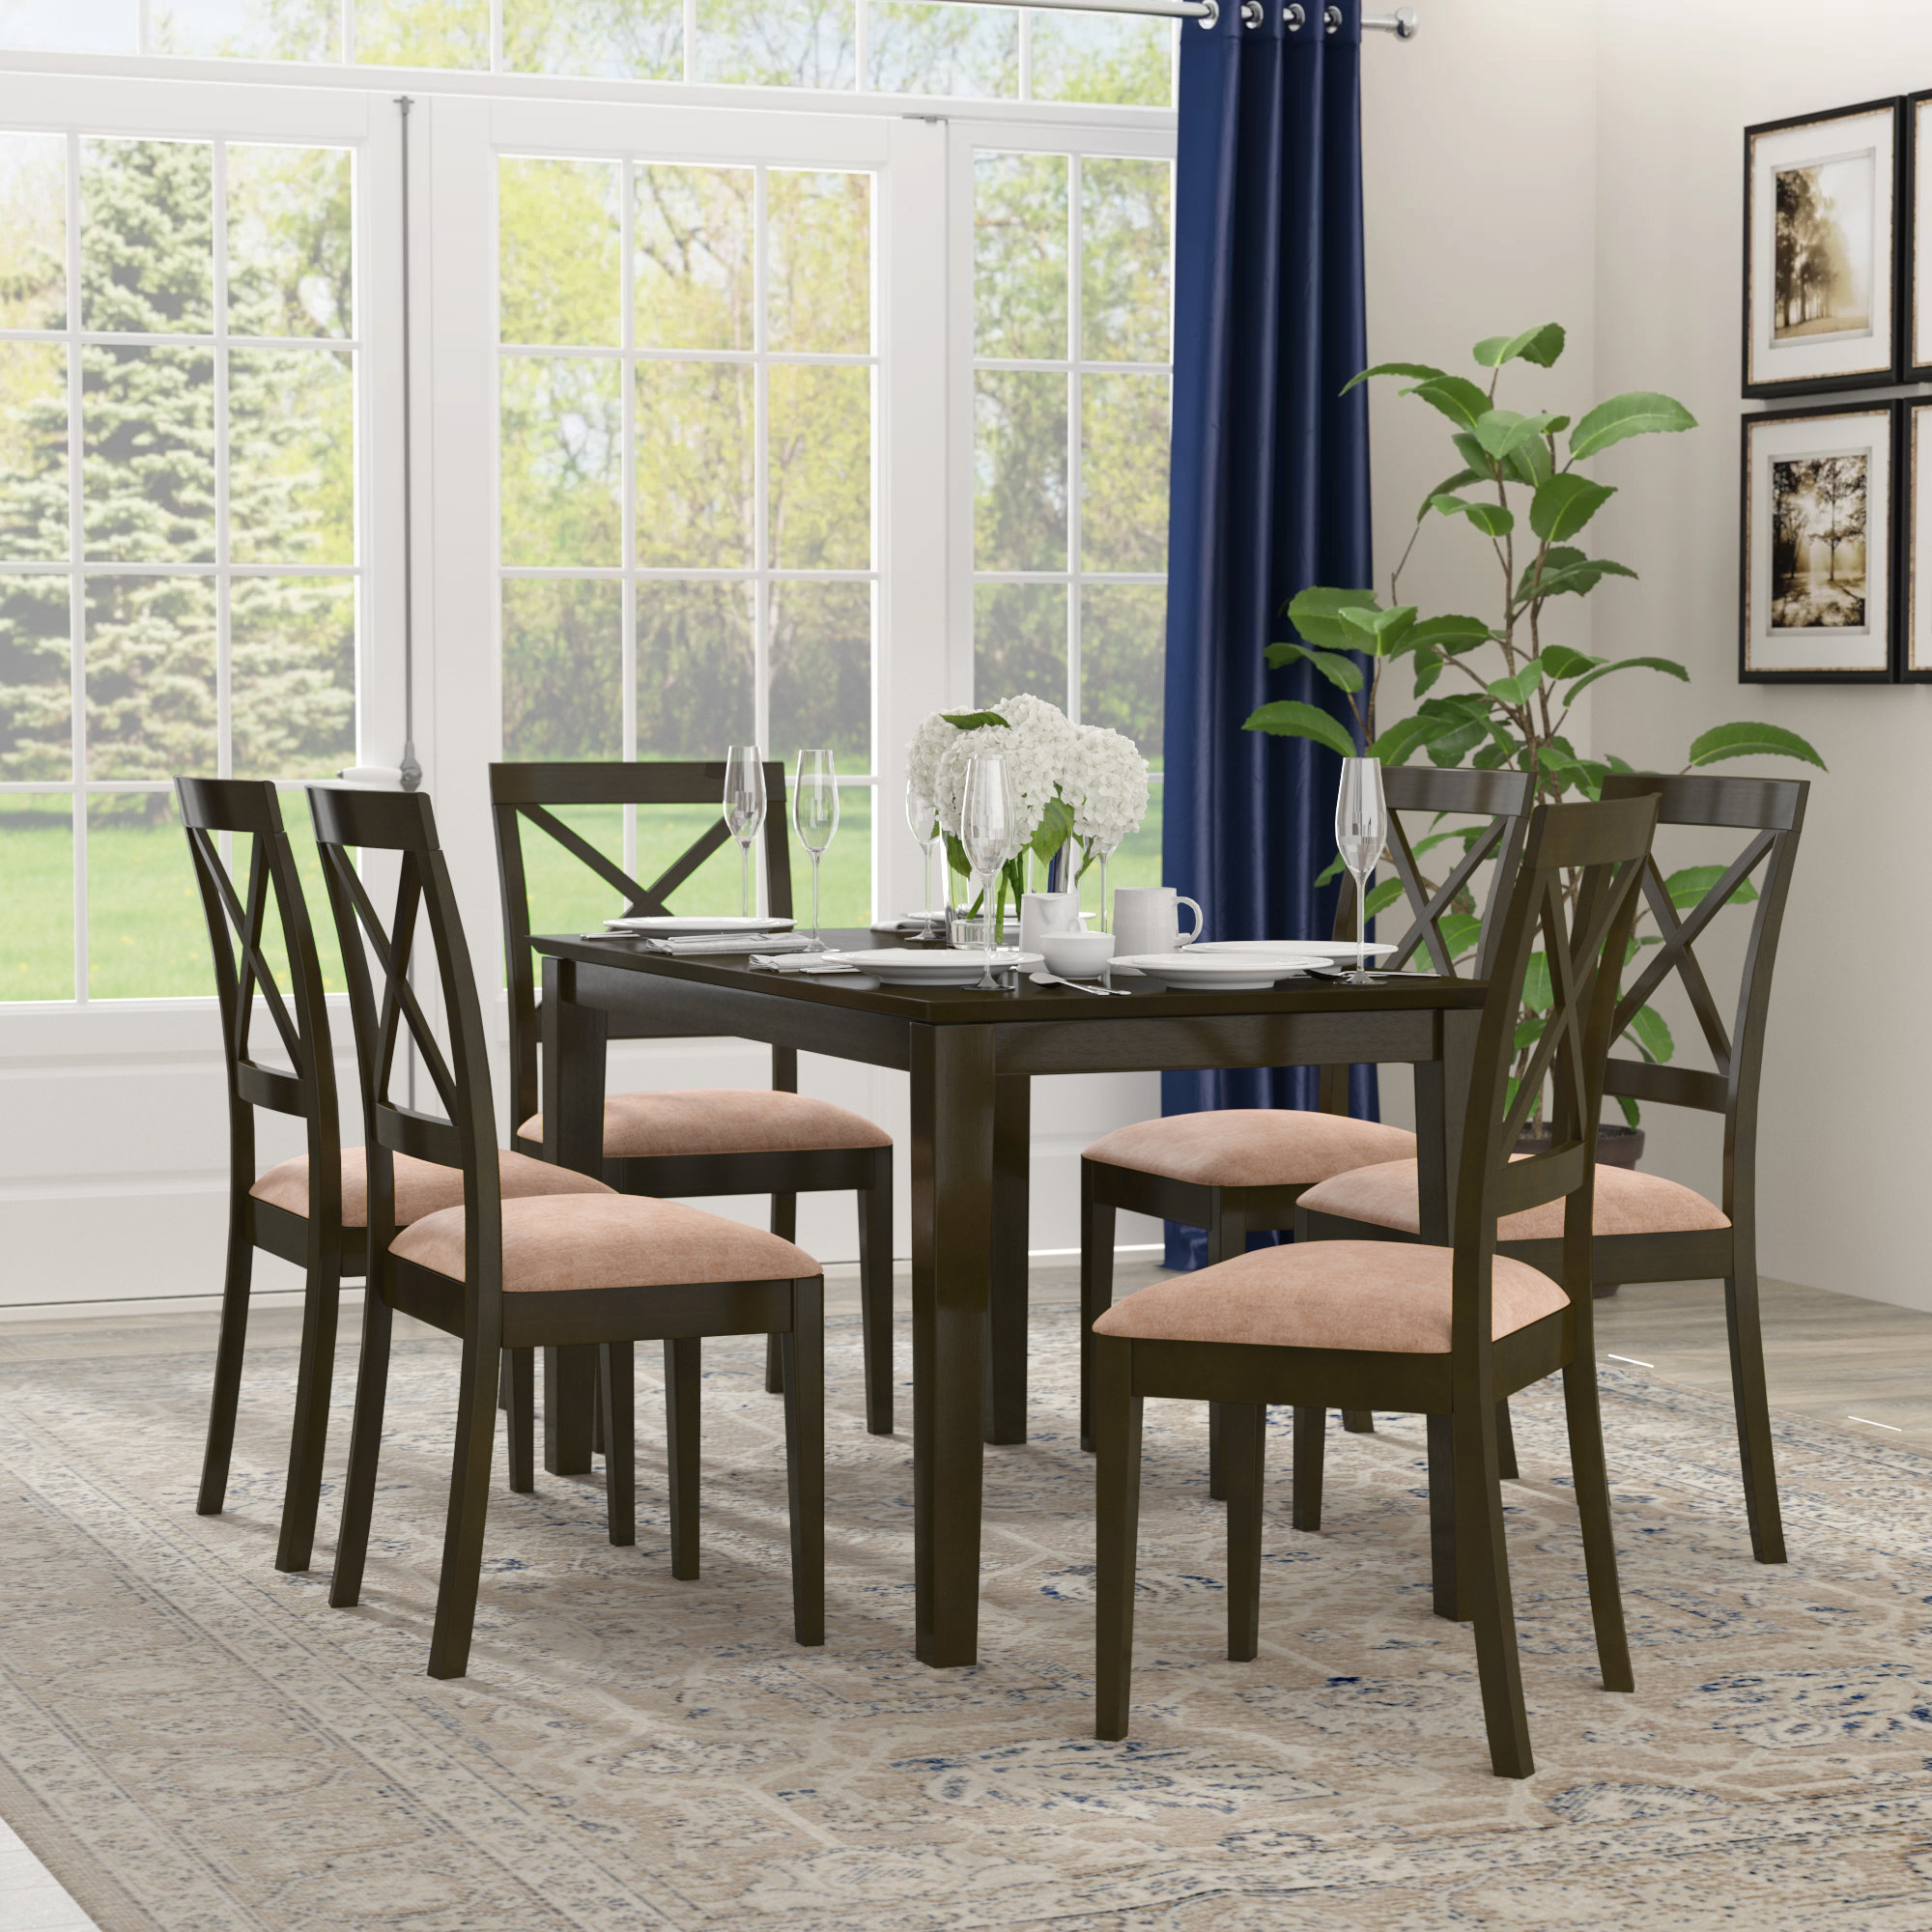 Current Smyrna Microfiber Upholstery 7 Piece Dining Set With Regard To Smyrna 3 Piece Dining Sets (View 3 of 20)